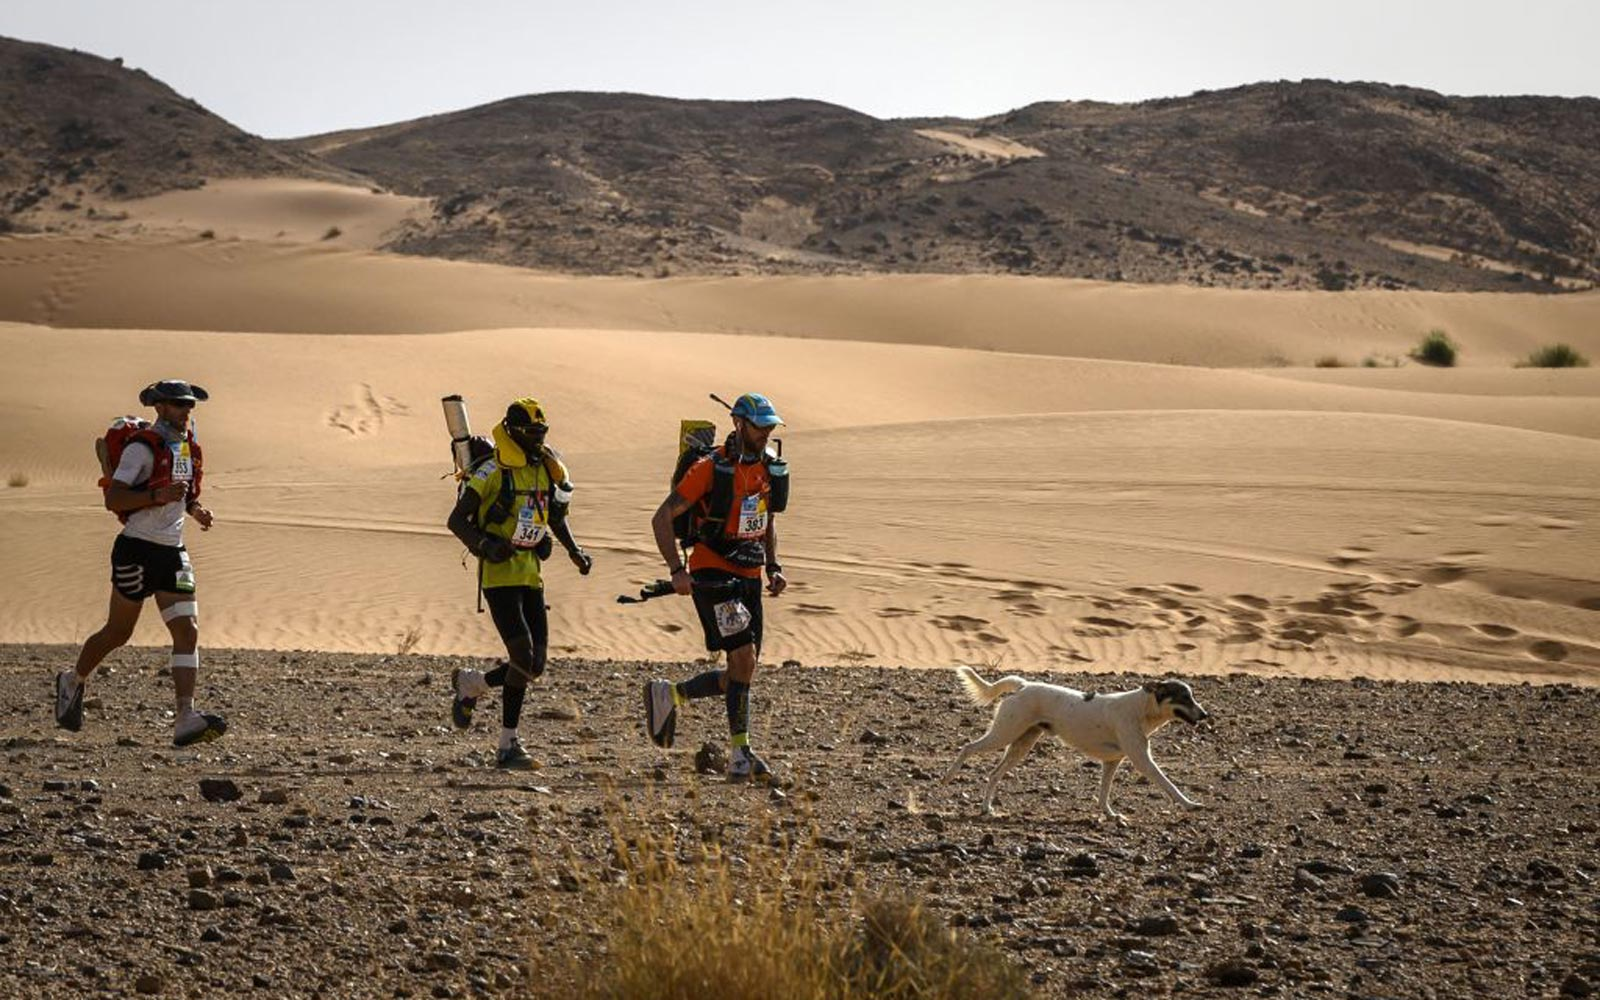 A Stray Dog Joined a 140-mile Footrace in the Sahara (and Stayed to Get His Medal)